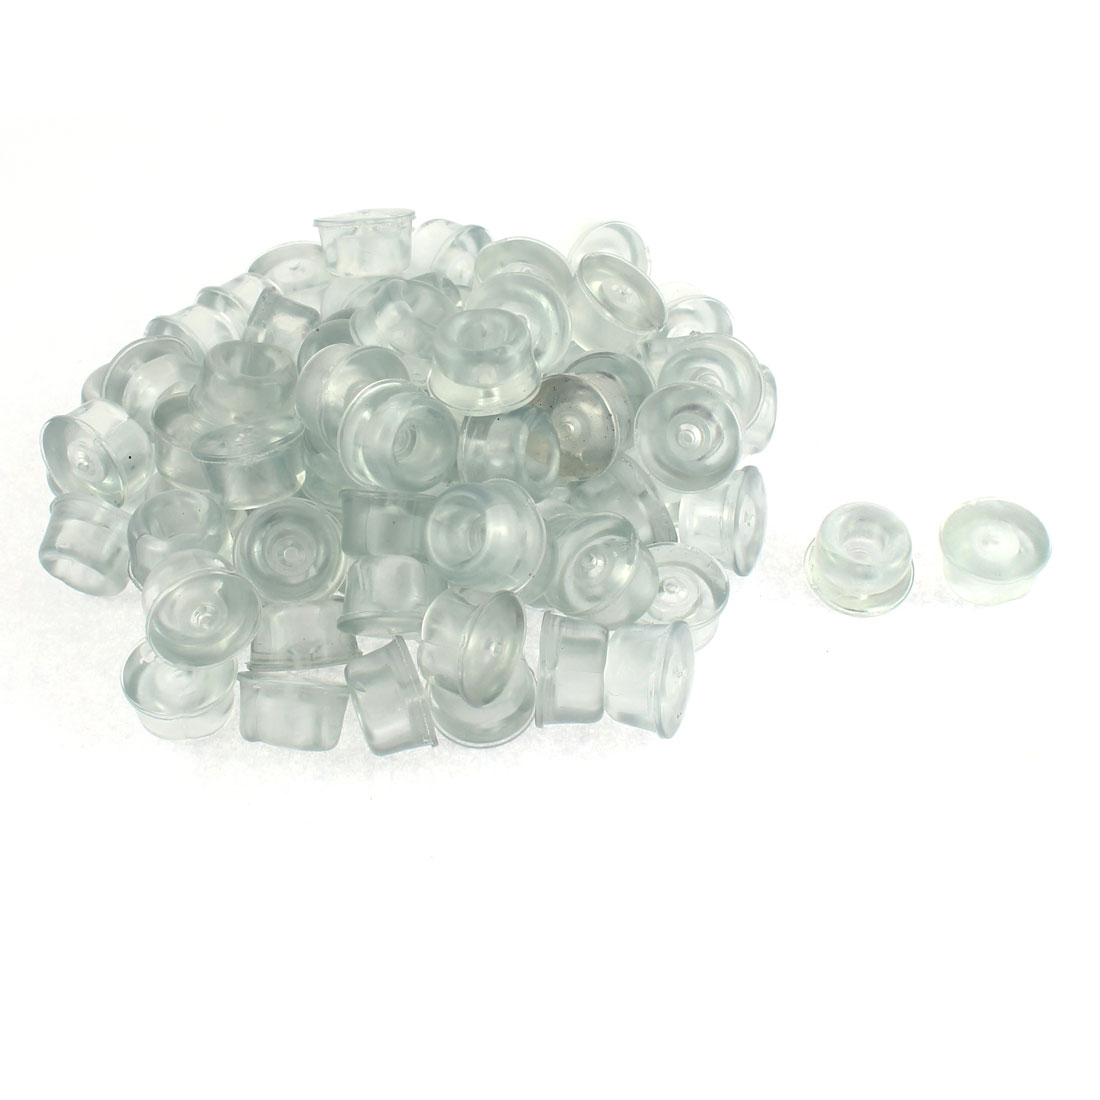 Rubber Cone Furniture Chair Leg Foot Tip Pad 22mm Dia Clear 80 Pcs